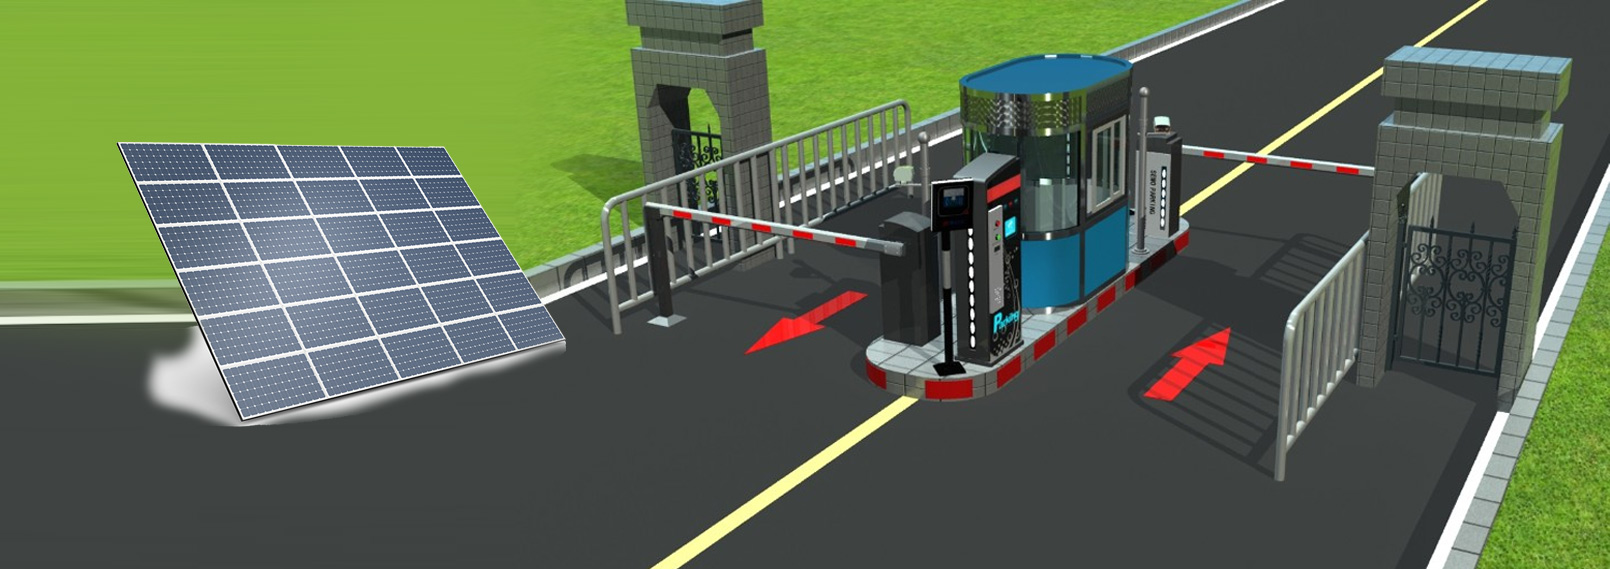 Solar-Solutions-for-Gate-Barrier-Systems